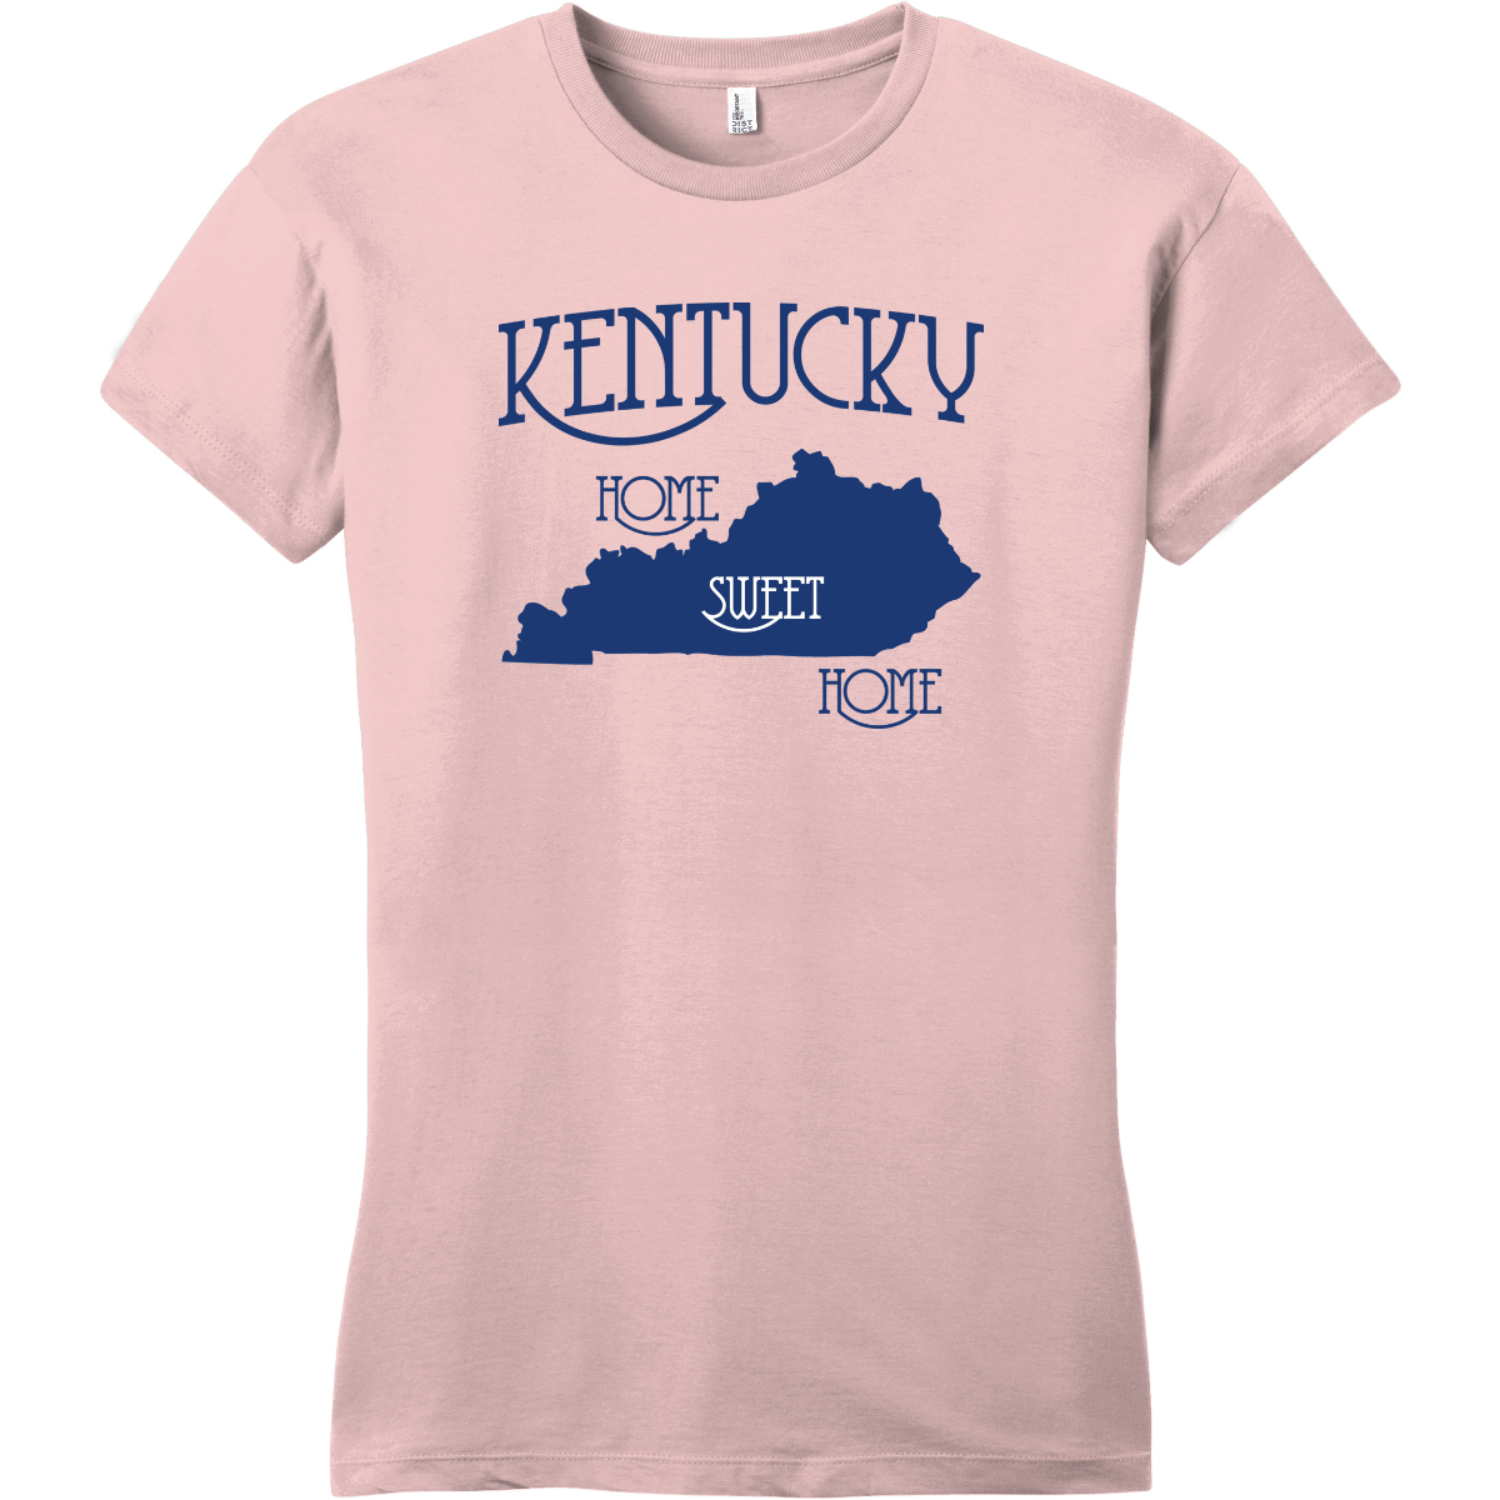 Kentucky Country Home Sweet Home T-Shirt Dusty Lavender District Women's Very Important Tee DT6002